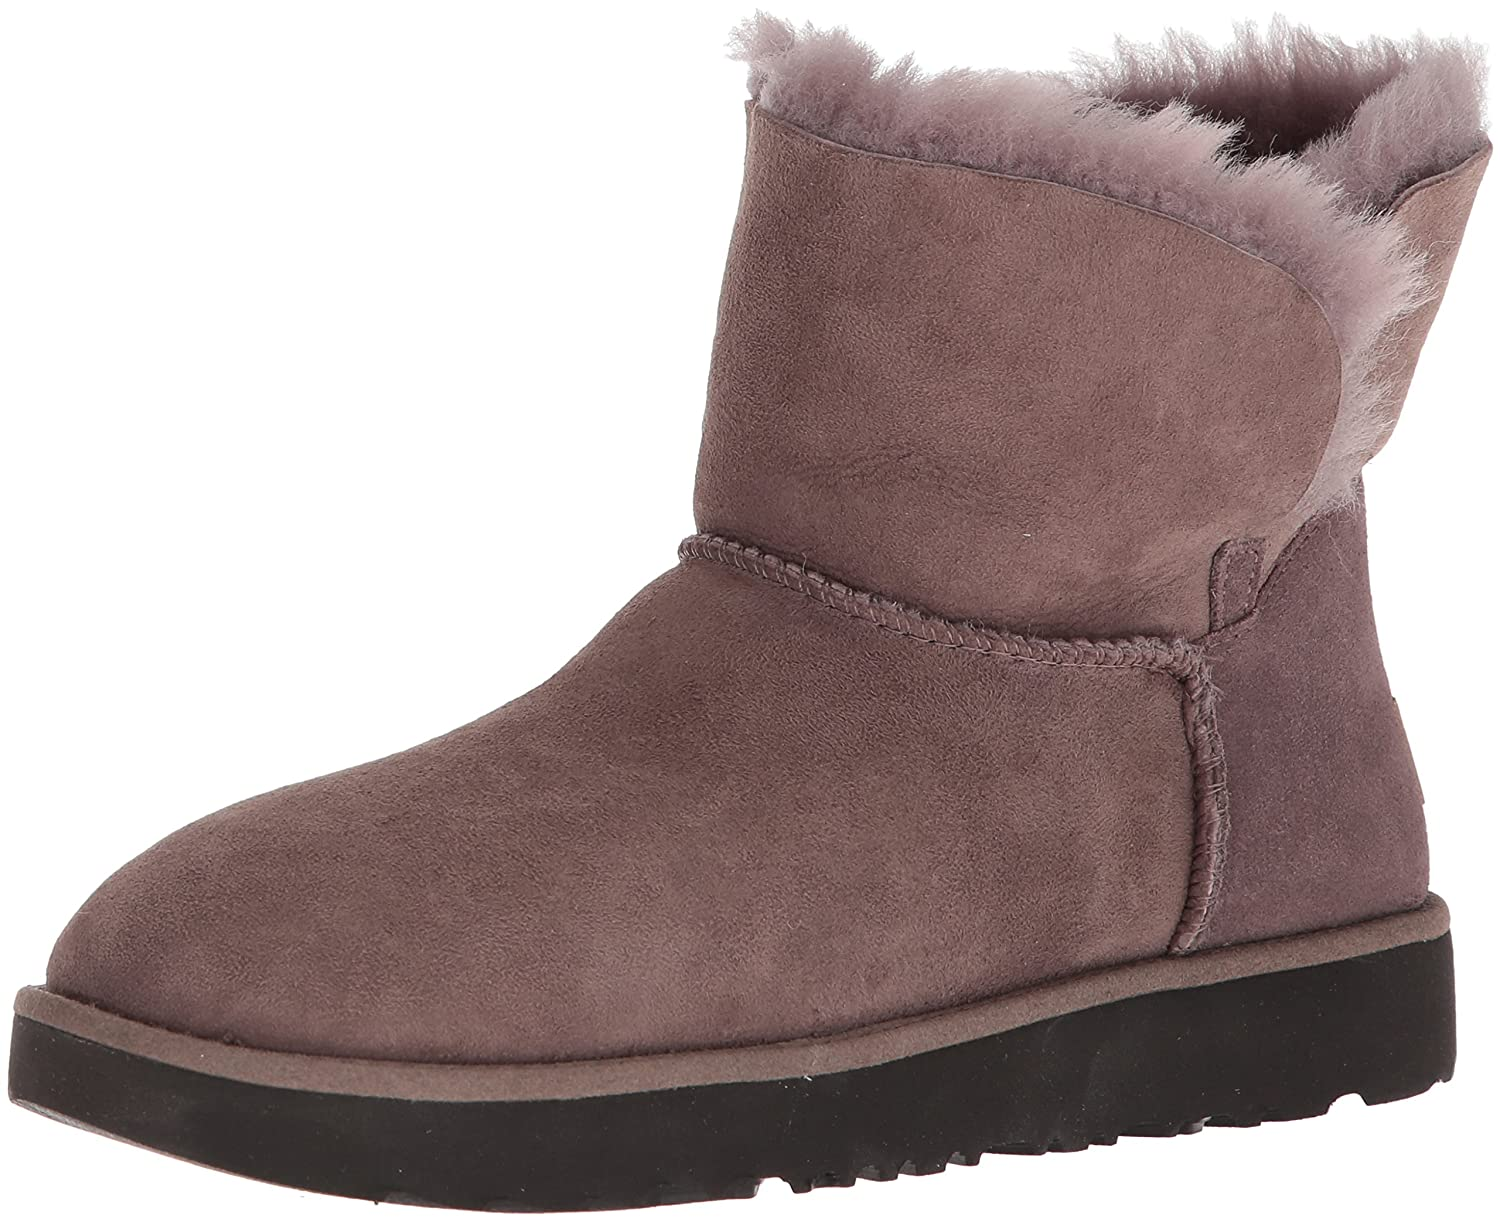 c9c4e0d4499 UGG Women's Classic Cuff Mini Winter Boot